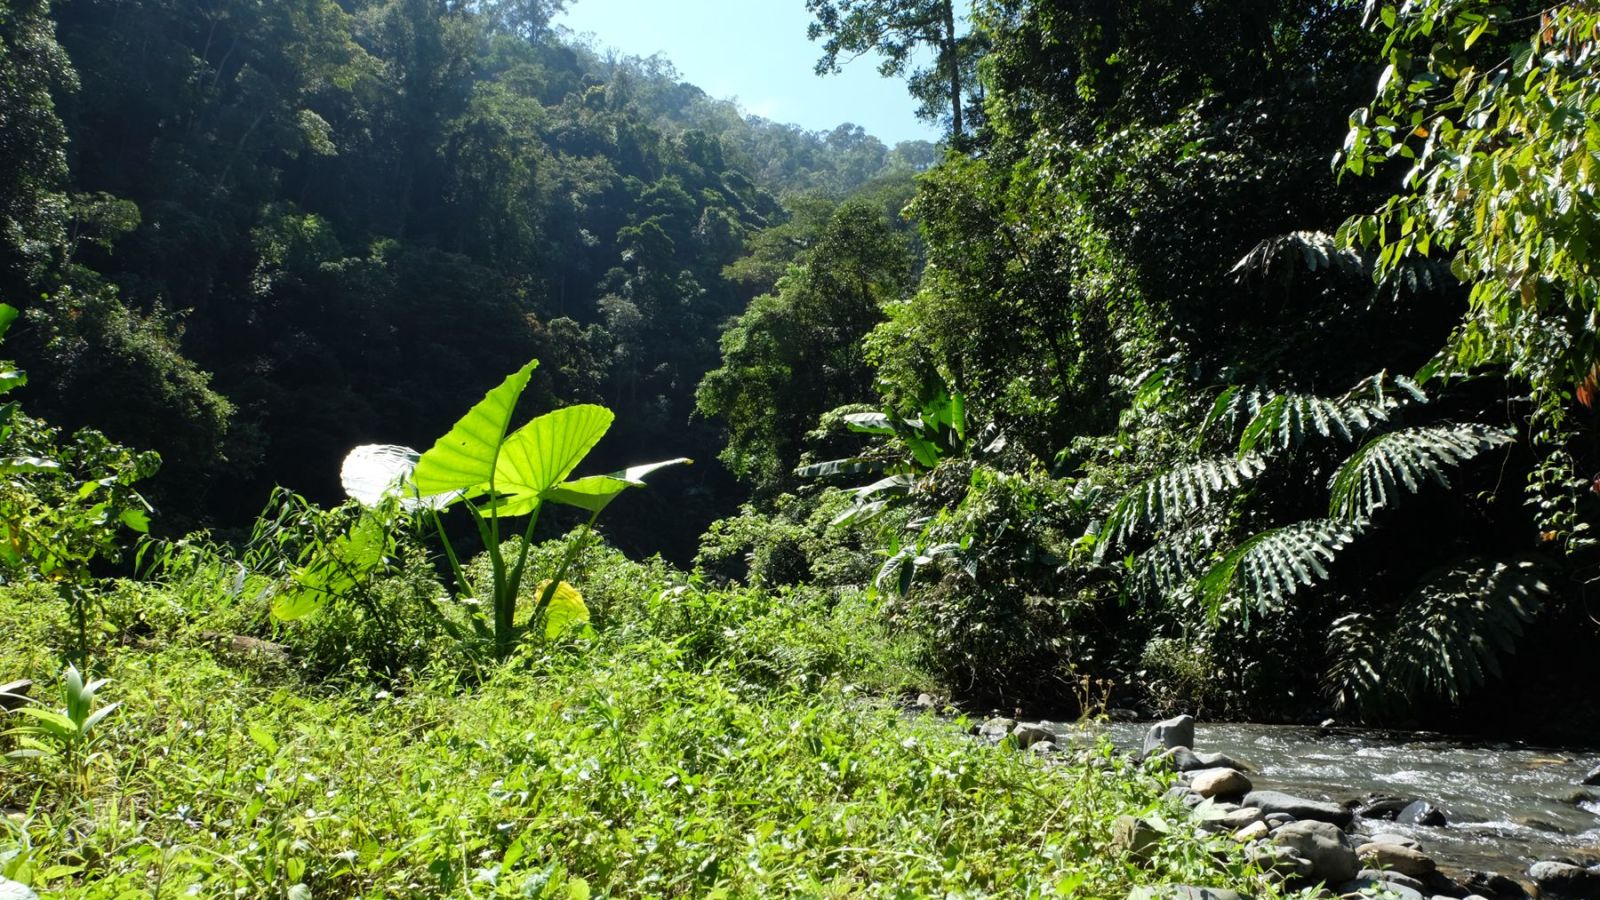 a photo of the river bed in the rainforest of gunung leuser national park.